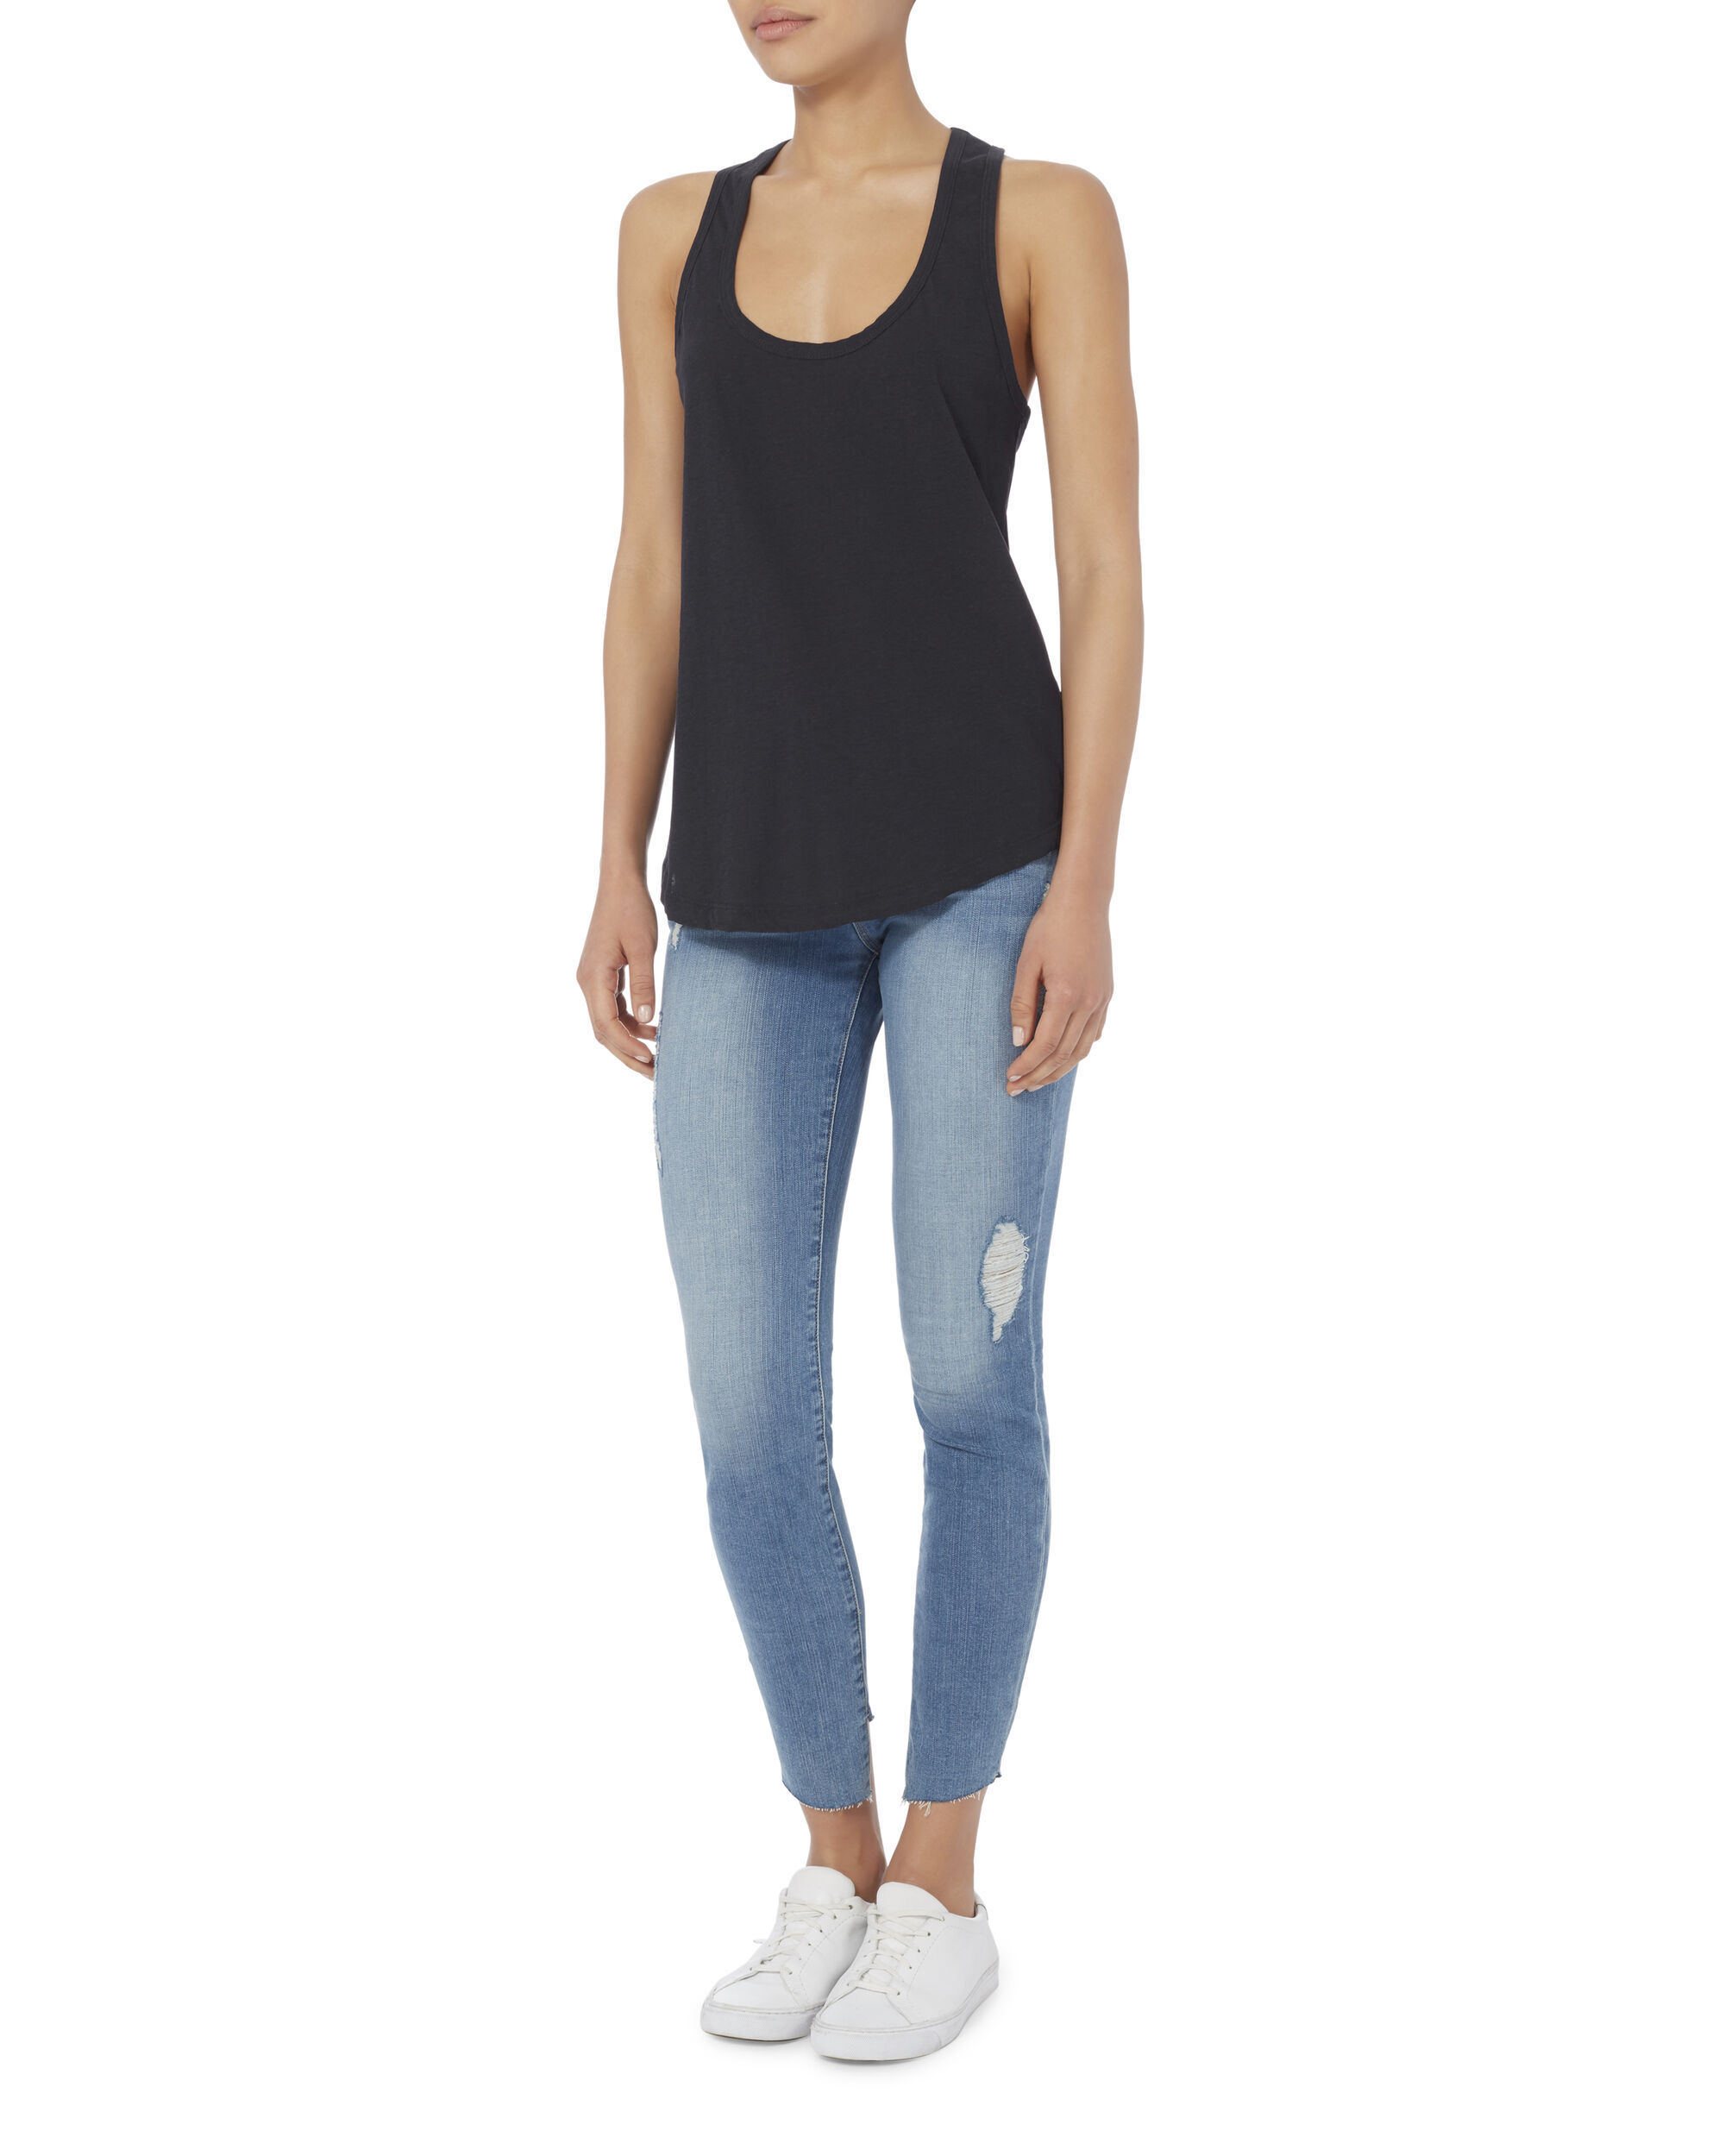 Asher Racerback Midnight Tank, NAVY, hi-res